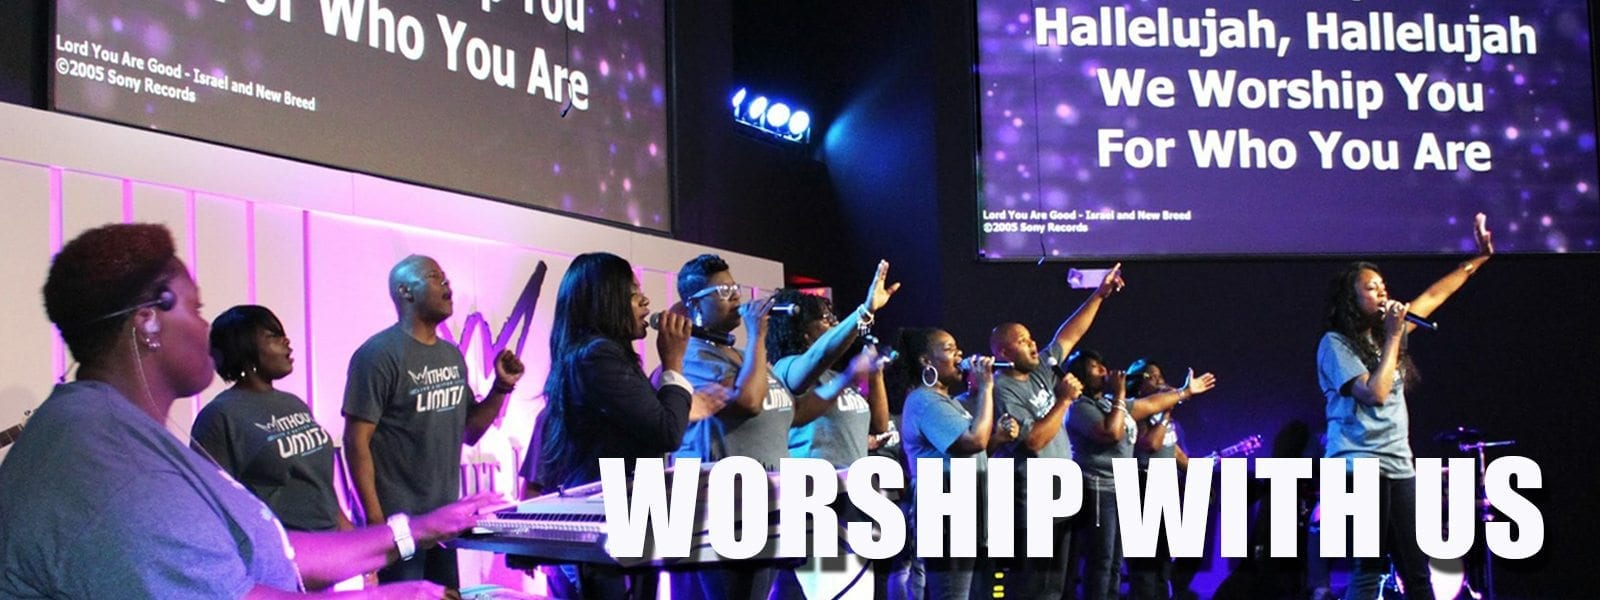 Worship With Us slide